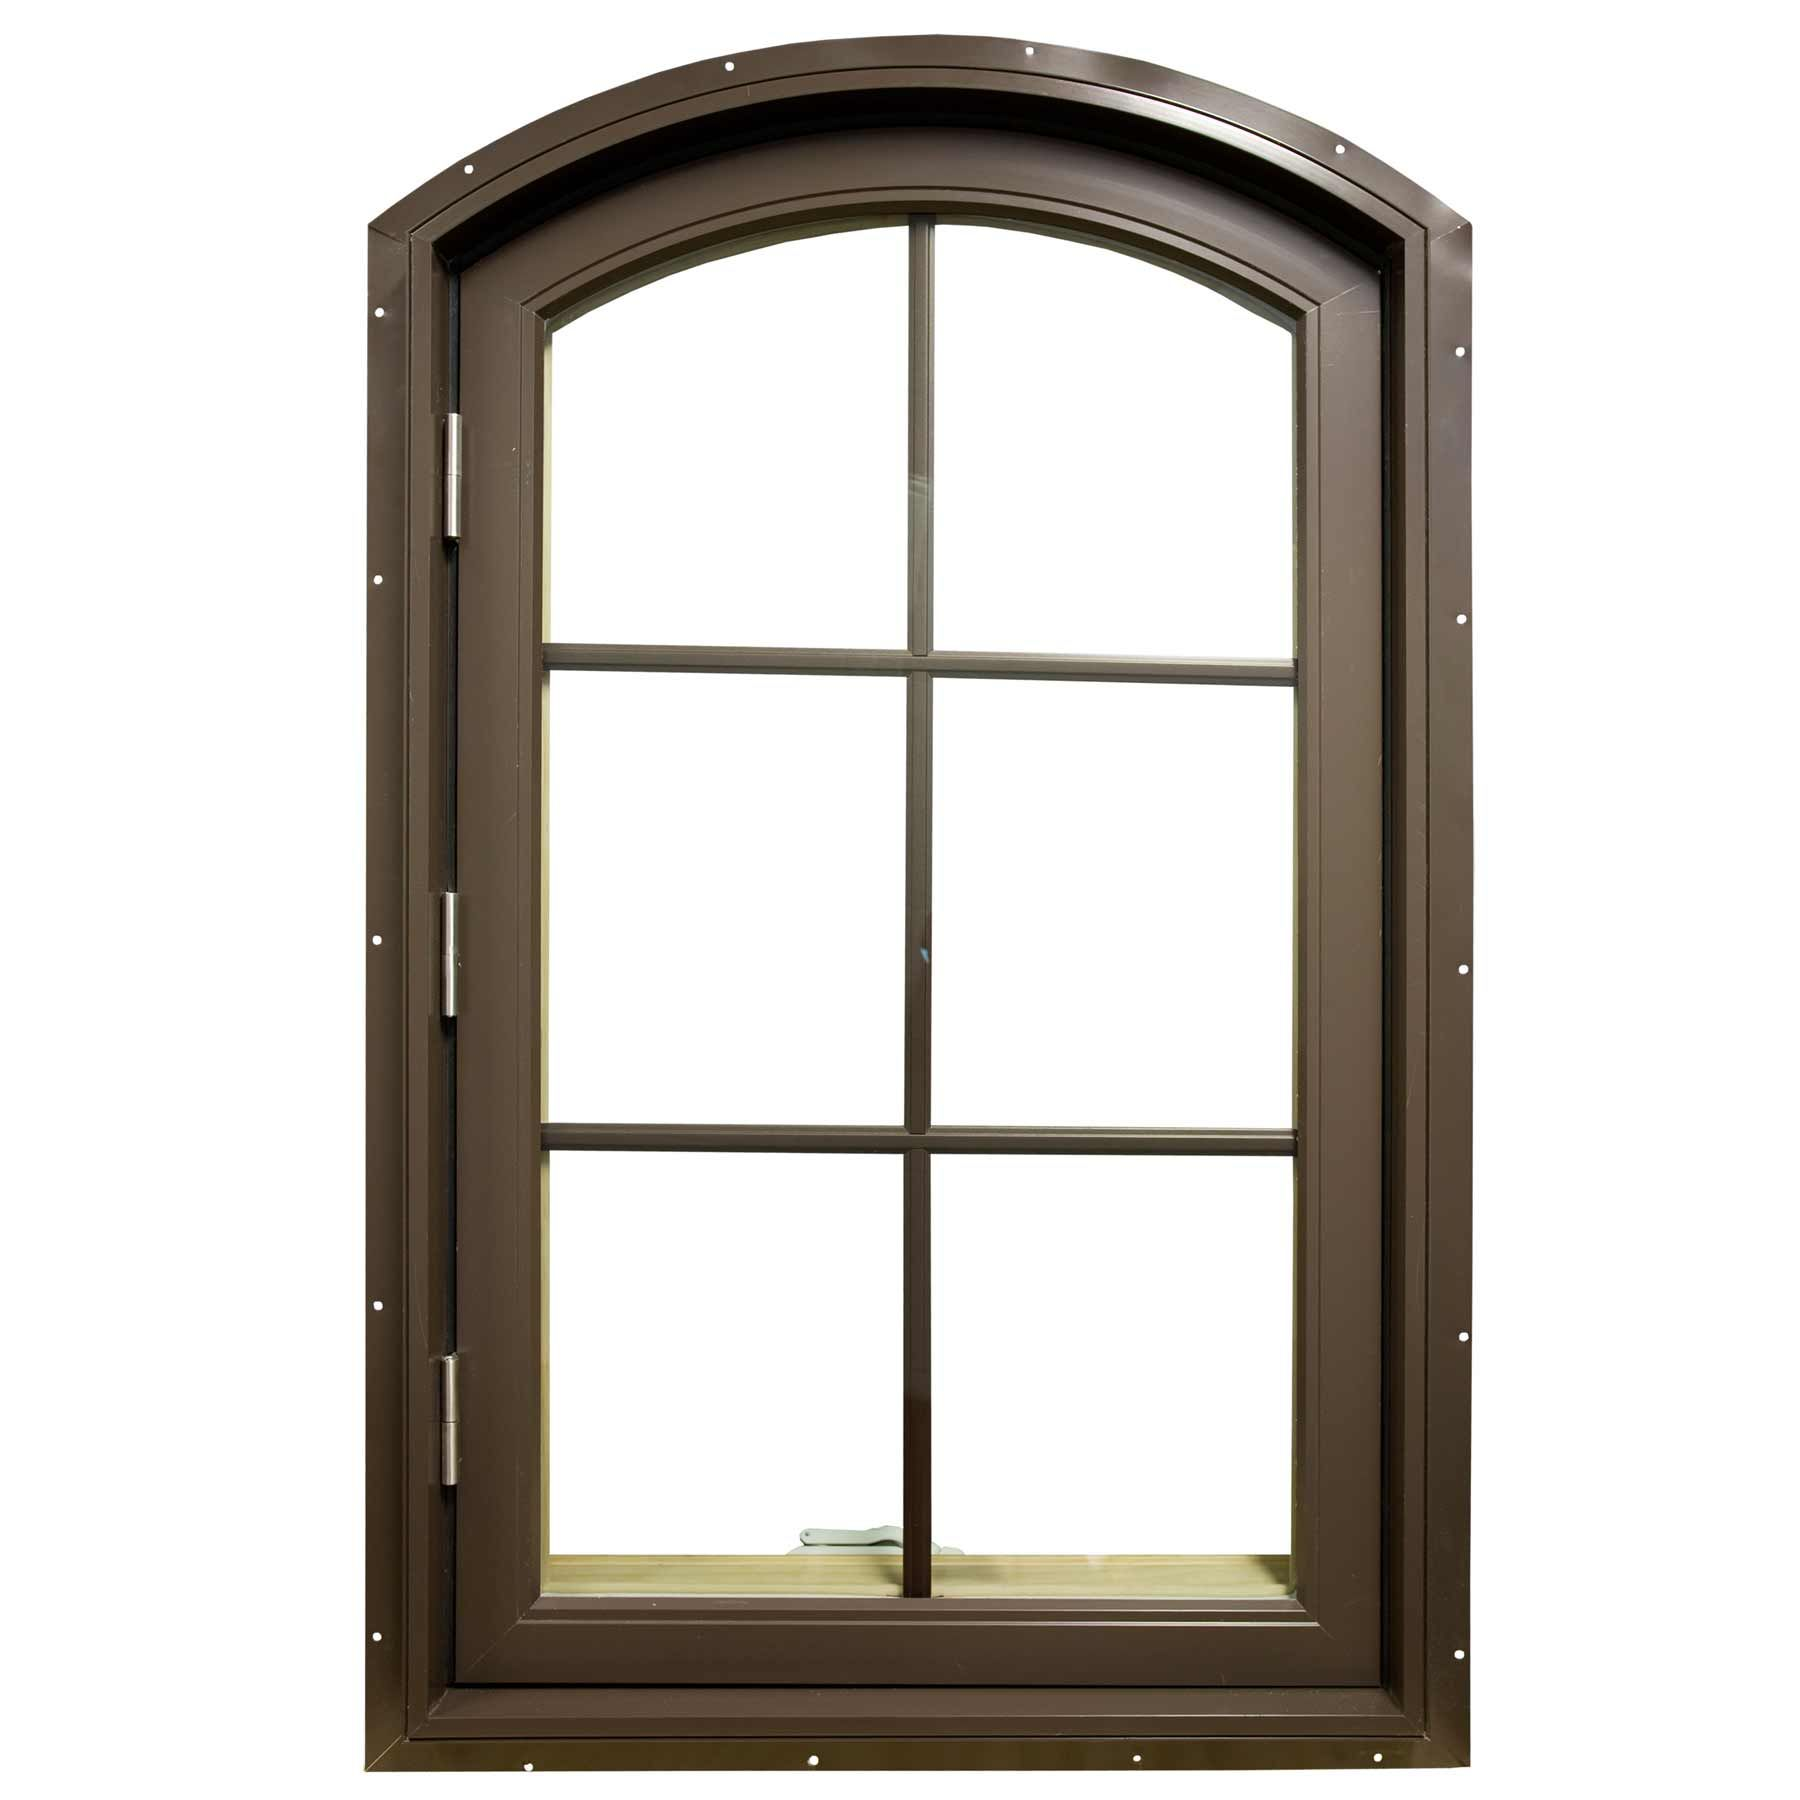 Aluminum casement windows for home feel the home for New window styles for homes